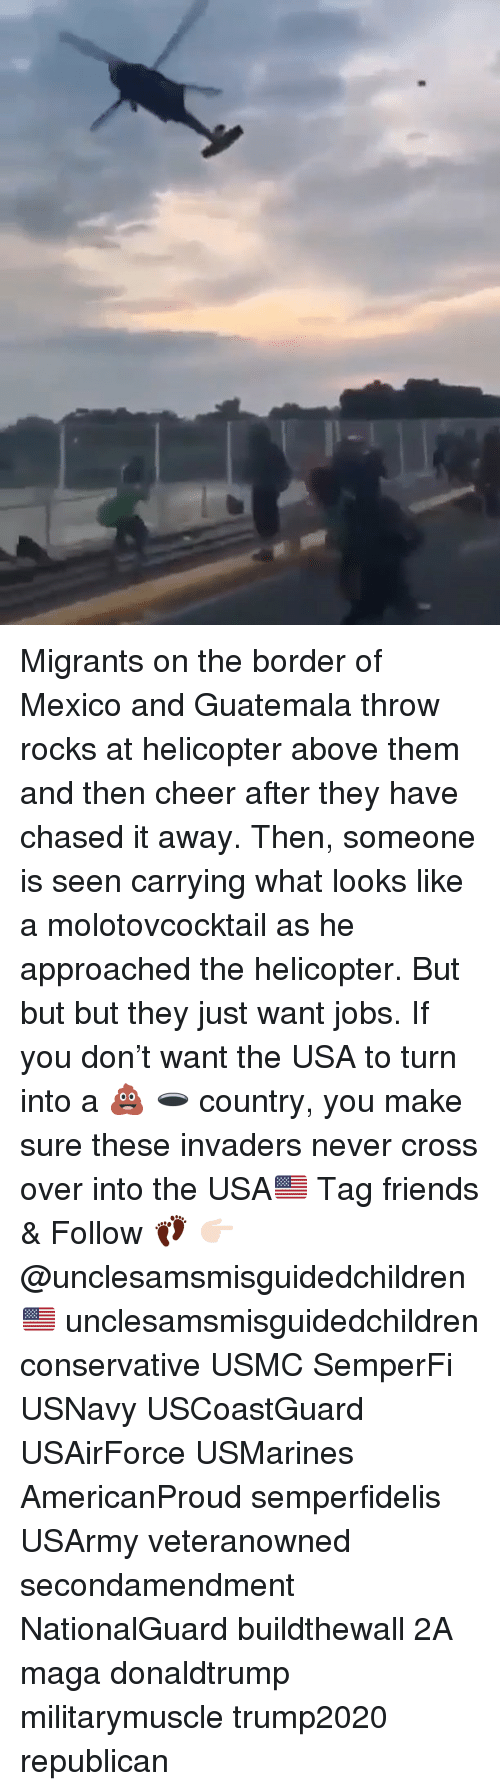 usmc: Migrants on the border of Mexico and Guatemala throw rocks at helicopter above them and then cheer after they have chased it away. Then, someone is seen carrying what looks like a molotovcocktail as he approached the helicopter. But but but they just want jobs. If you don't want the USA to turn into a 💩 🕳 country, you make sure these invaders never cross over into the USA🇺🇸 Tag friends & Follow 👣 👉🏻 @unclesamsmisguidedchildren 🇺🇸 unclesamsmisguidedchildren conservative USMC SemperFi USNavy USCoastGuard USAirForce USMarines AmericanProud semperfidelis USArmy veteranowned secondamendment NationalGuard buildthewall 2A maga donaldtrump militarymuscle trump2020 republican